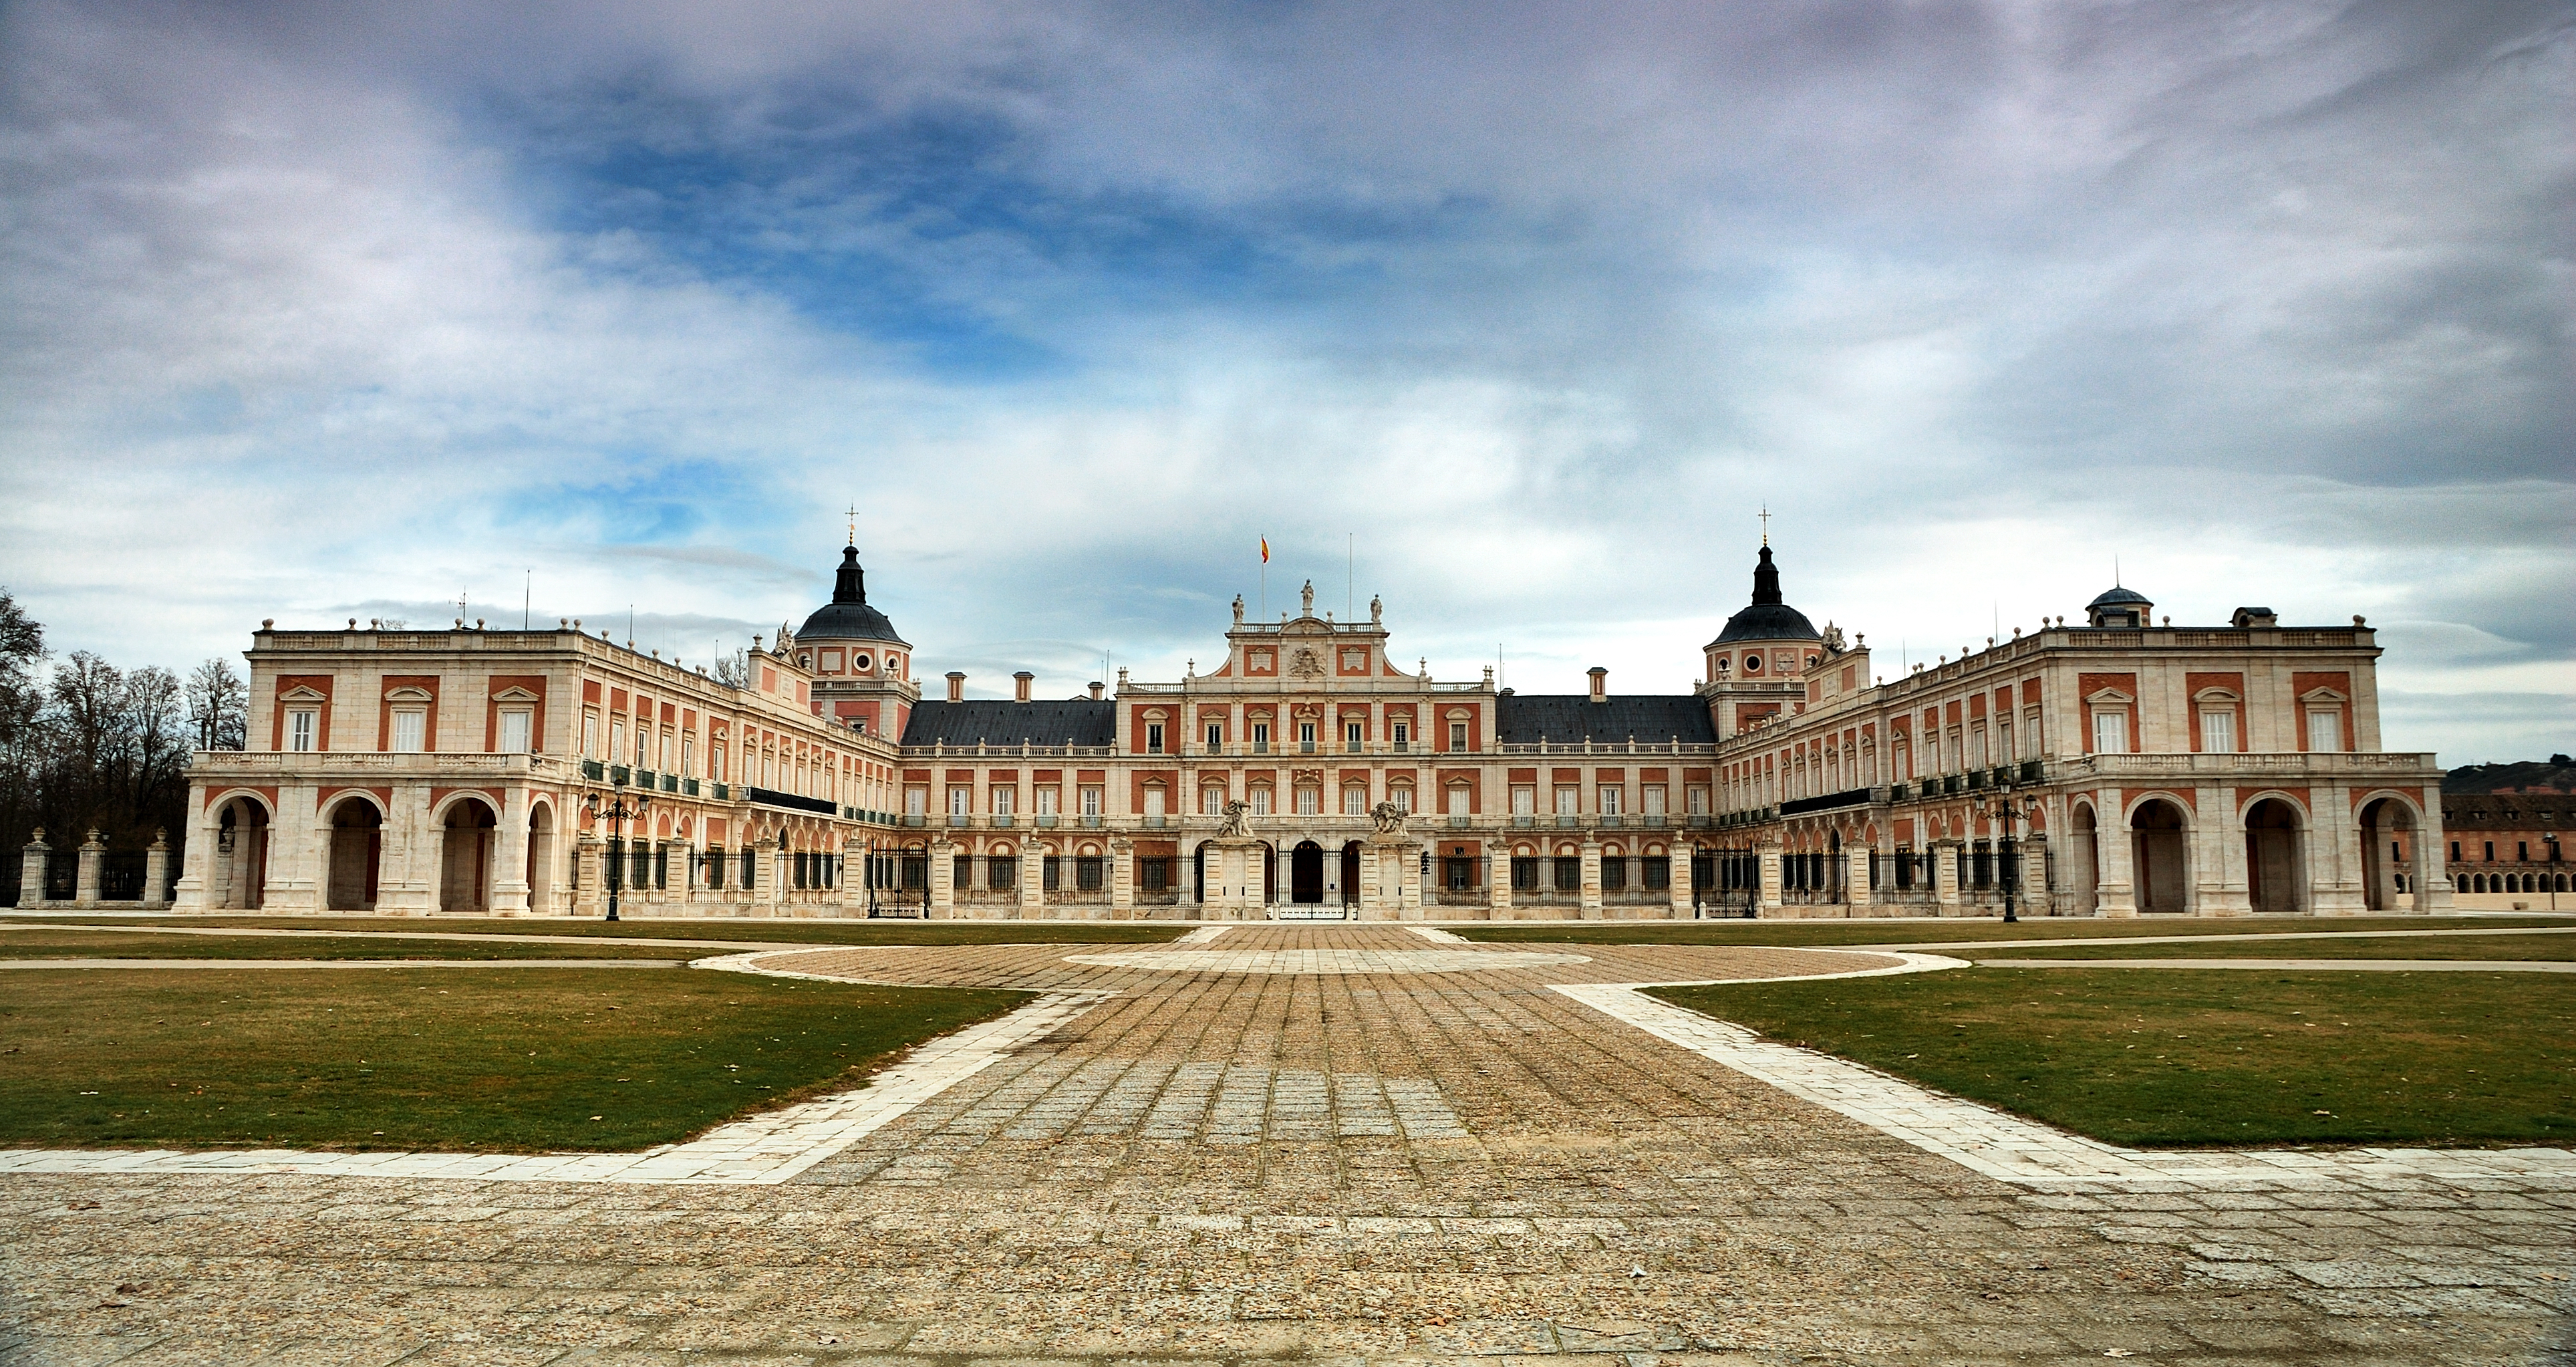 Aranjuez Spain  city photos gallery : Palacio Real de Aranjuez 5 Wikimedia Commons